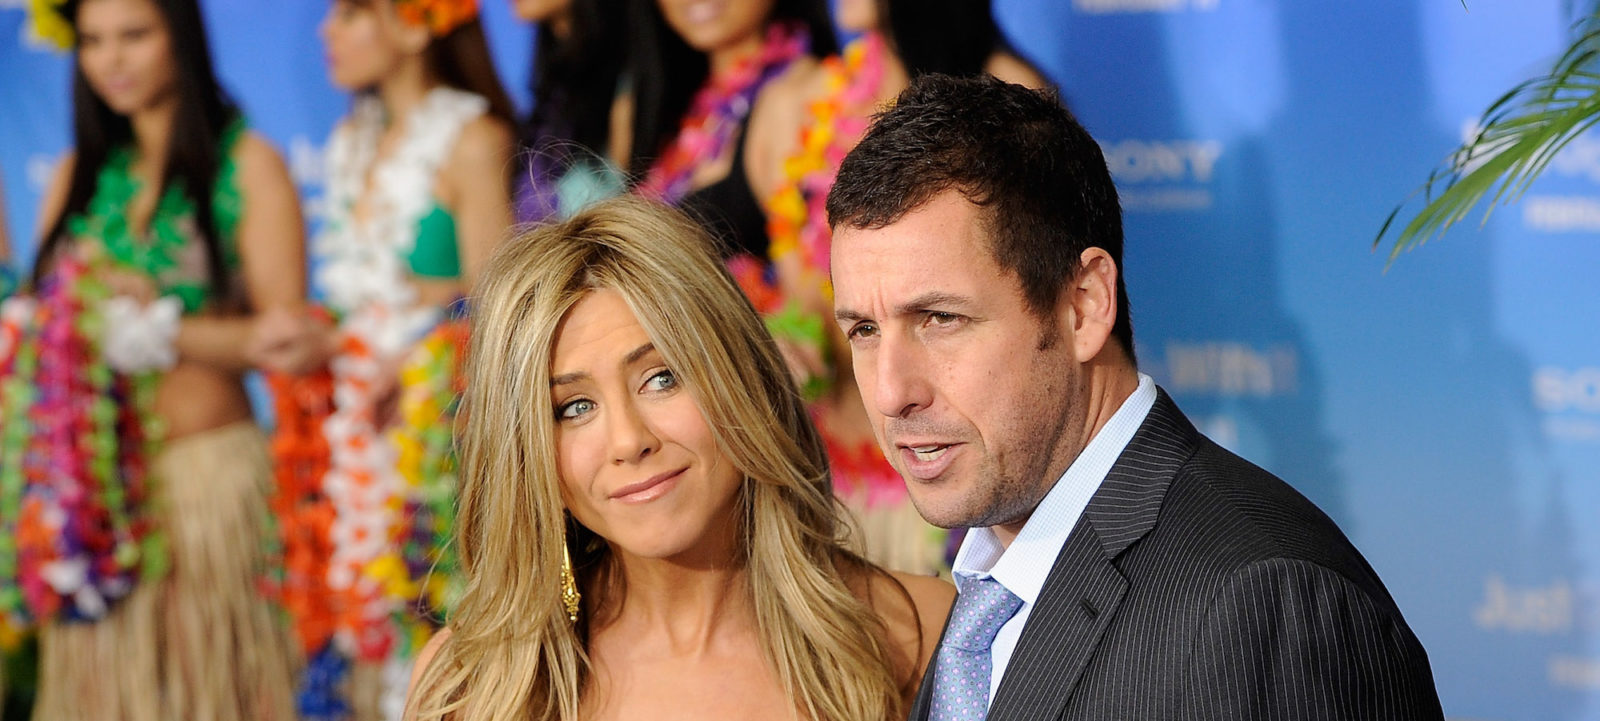 First Look: Jennifer Aniston and Adam Sandler Team Up for